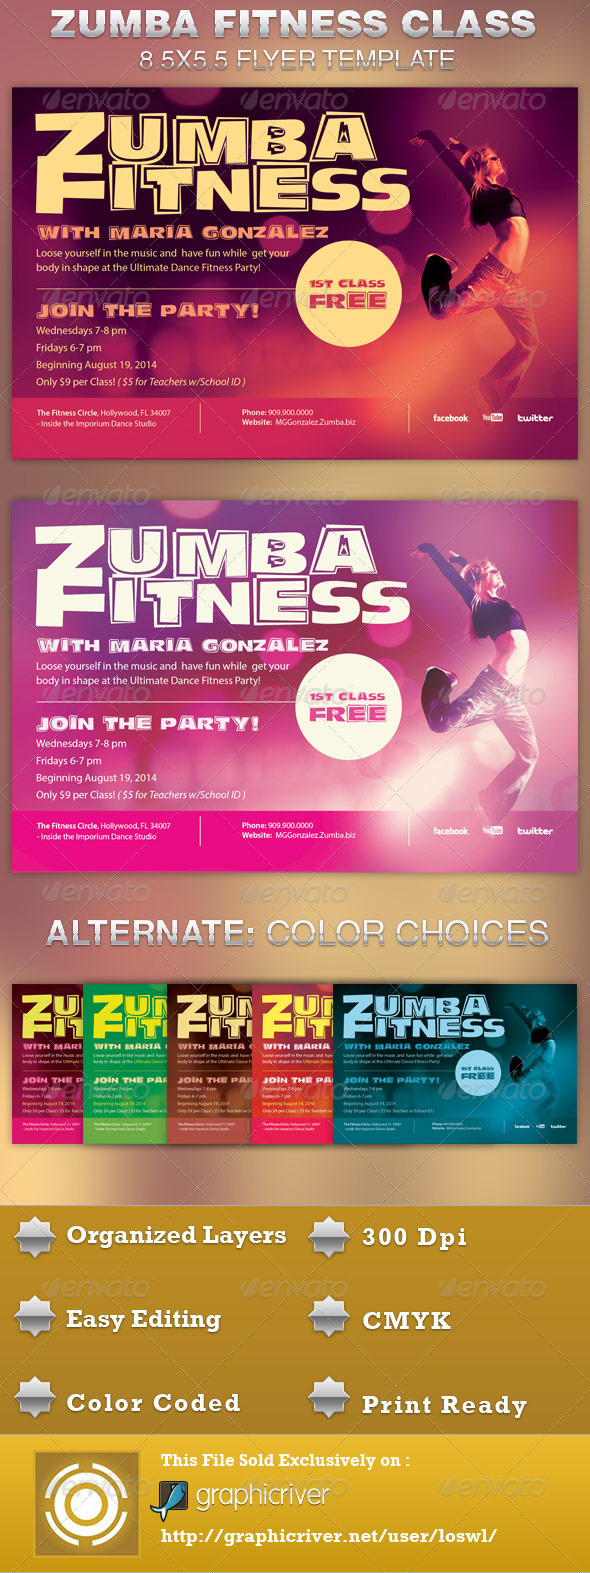 Zumba event flyer barearsbackyard zumba event flyer stopboris Image collections